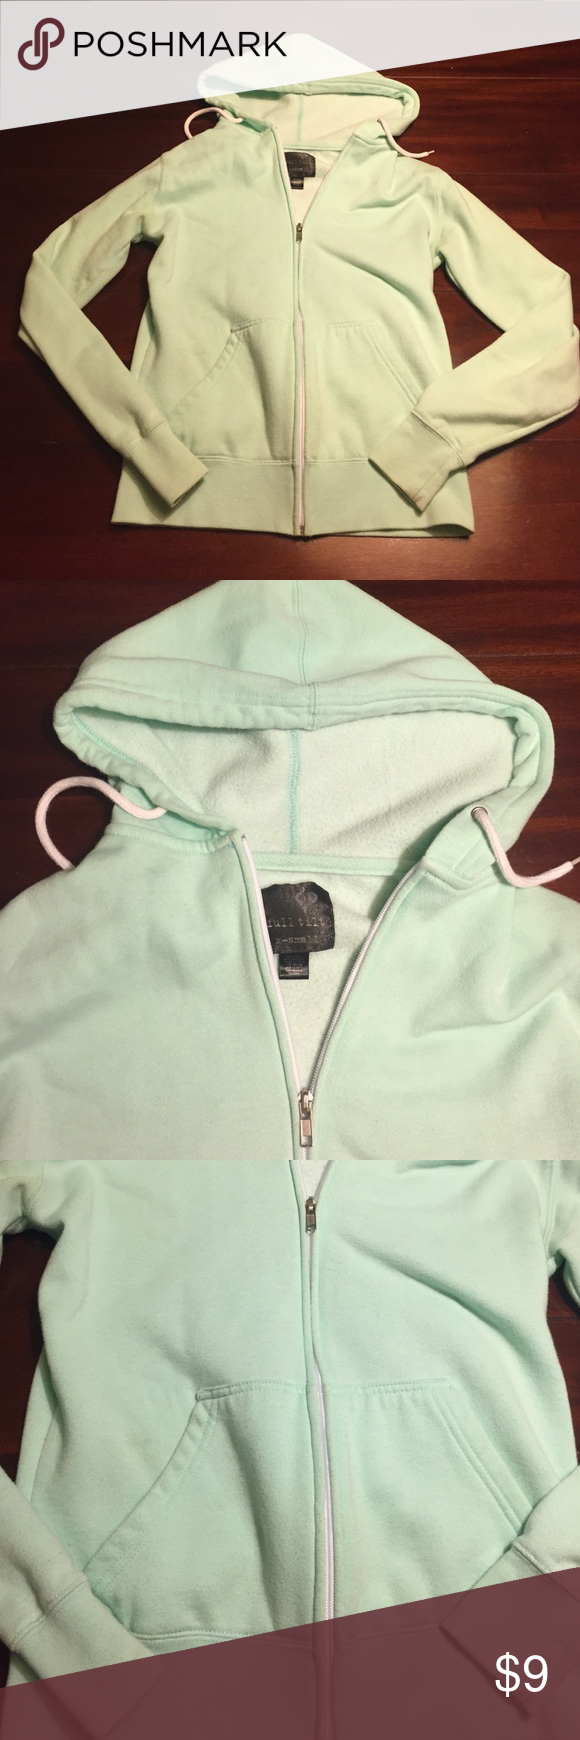 Mint green zip up hoodie mint green zip up hoodie purchased from Zumiez, very comfortable, some discoloration from normal wear, no holes, I LOVE OFFERS Full Tilt Jackets & Coats